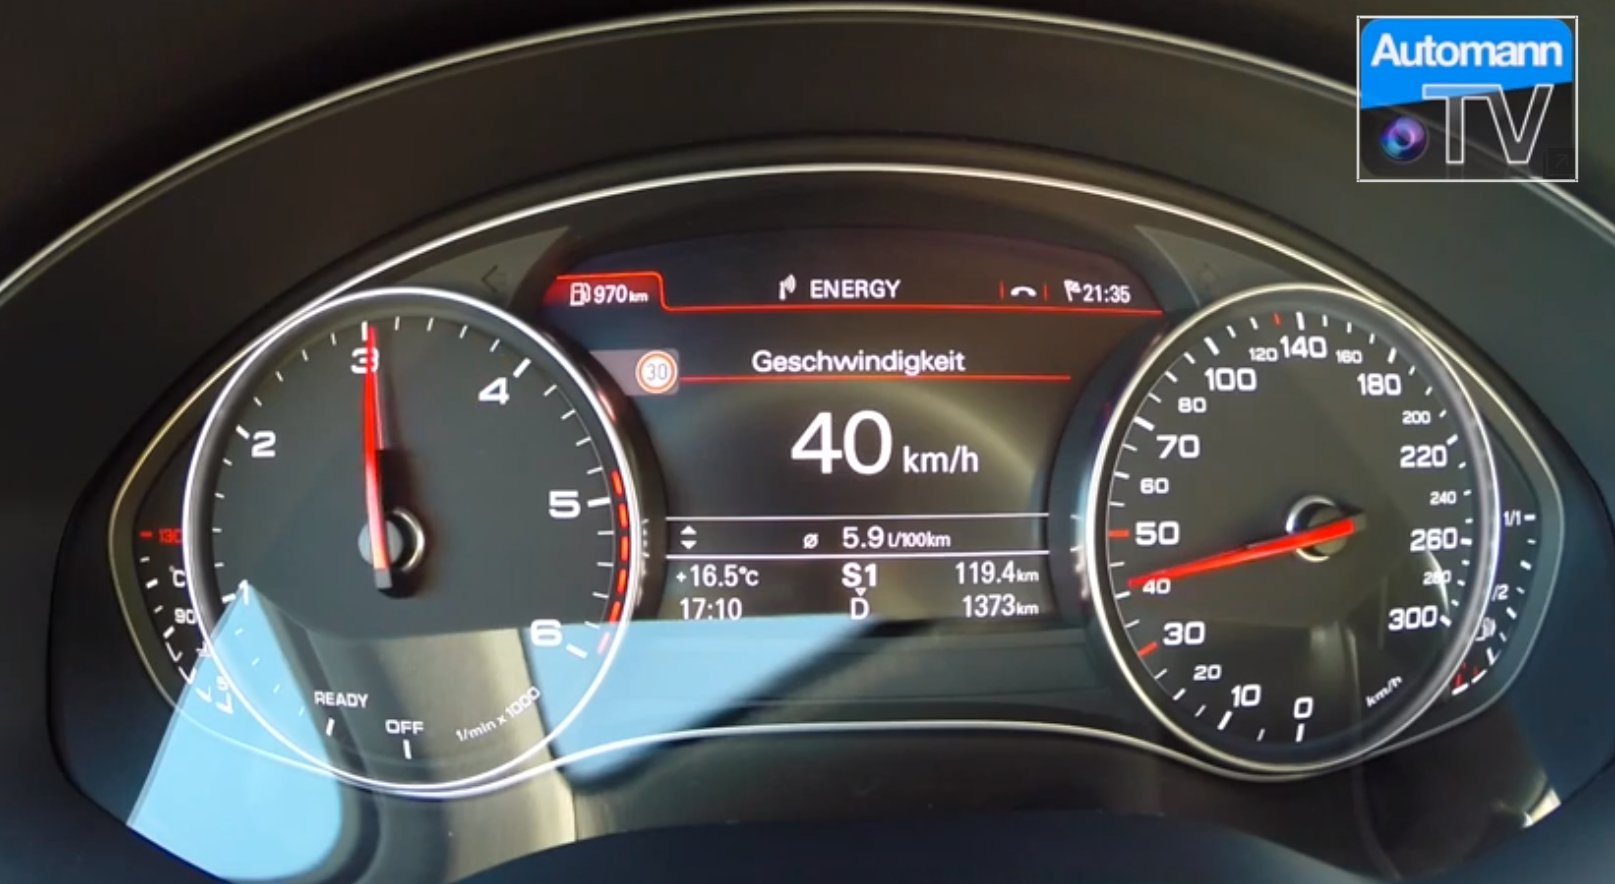 2015 Audi A6 2.0 TDI ultra Acceleration and Top Speed Test ...